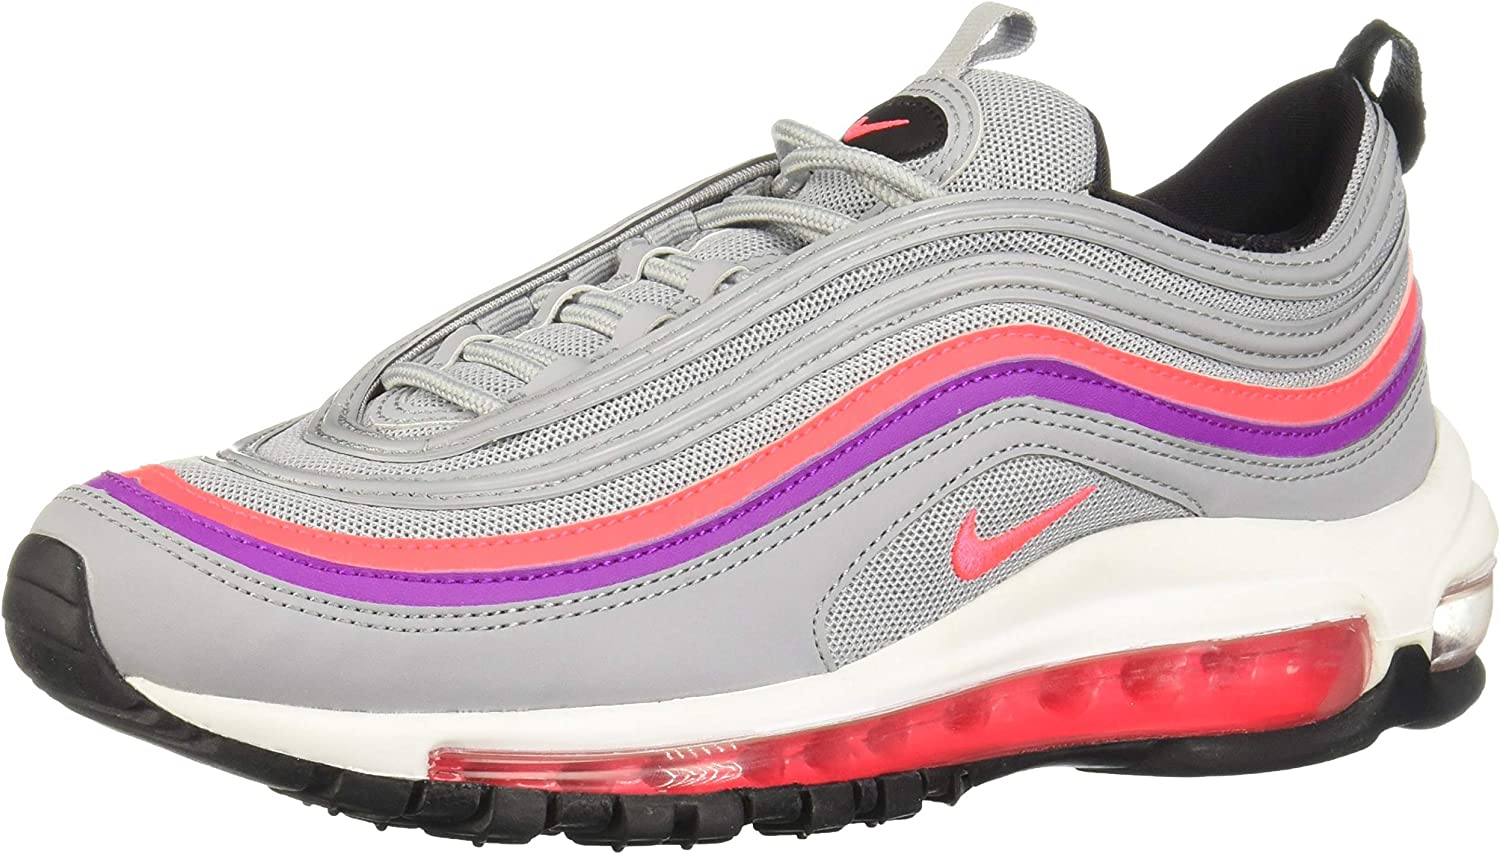 Details about Nike air max 97 Women's Sneaker 921733 100 White Fashion Shoes Sneakers New